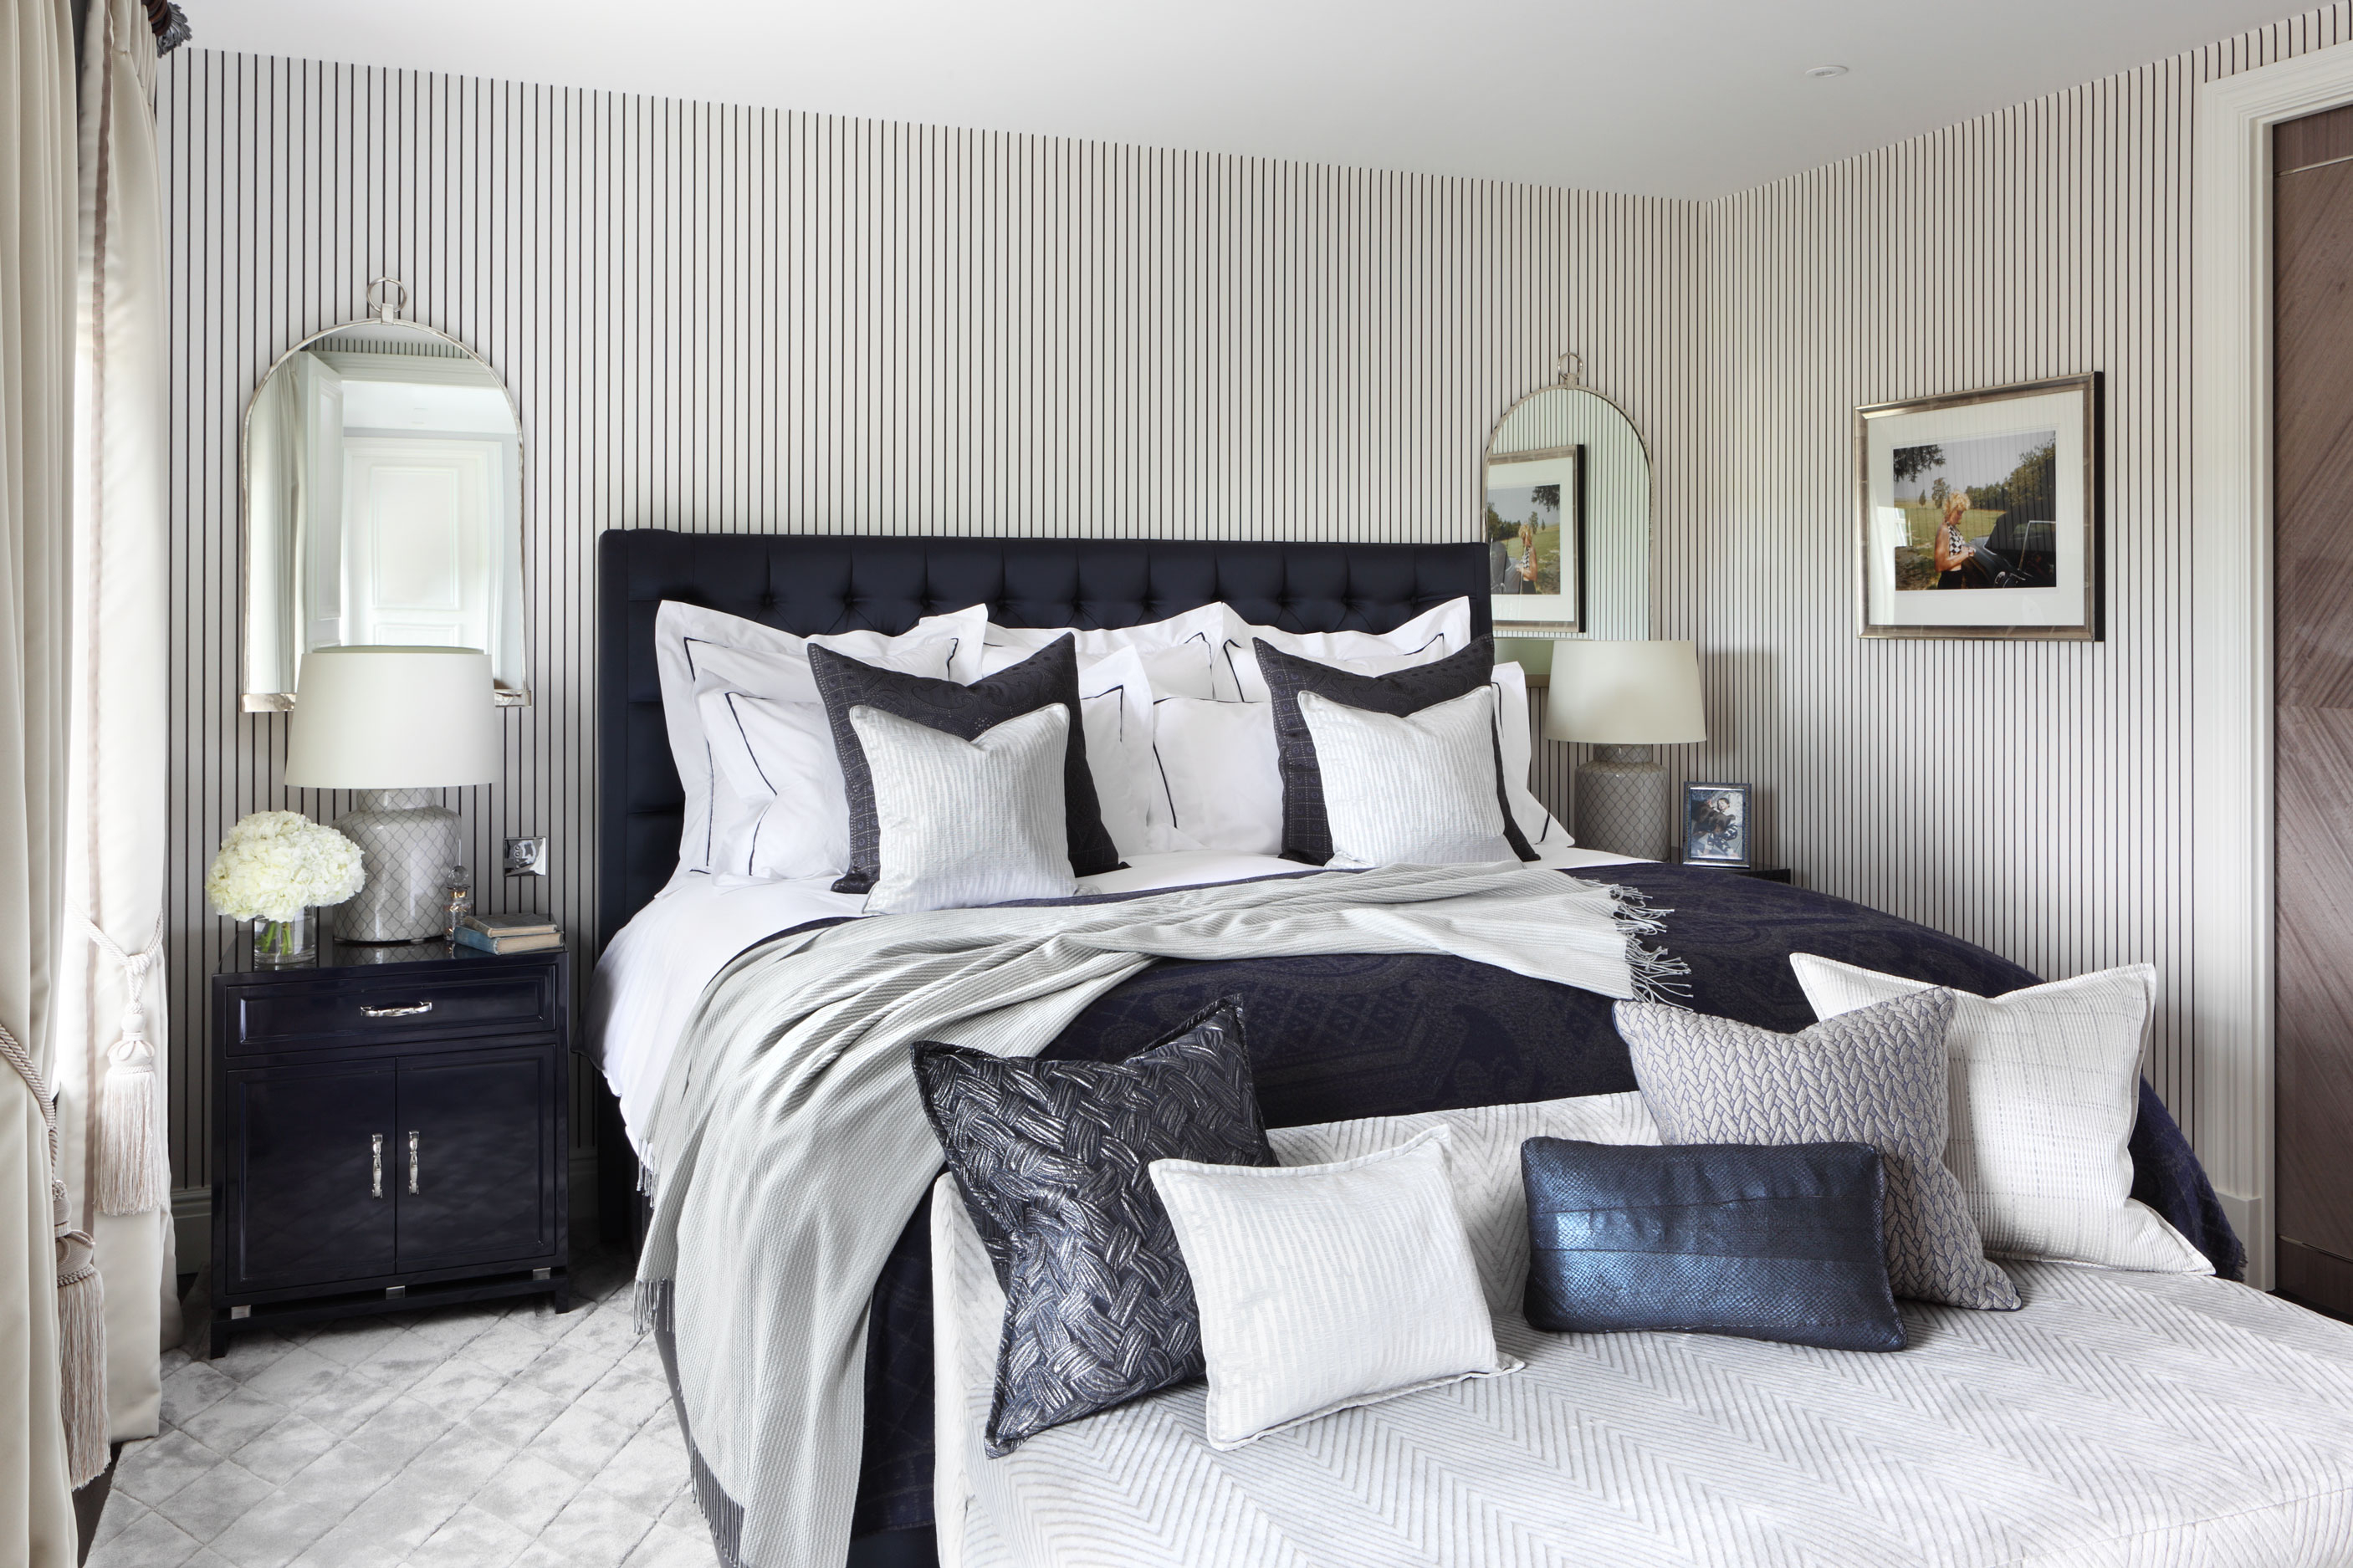 Bedroom Ideas 52 Modern Design Ideas For Your Bedroom The Luxpad with 10 Genius Ways How to Craft Modern Bedroom Designs For Couples